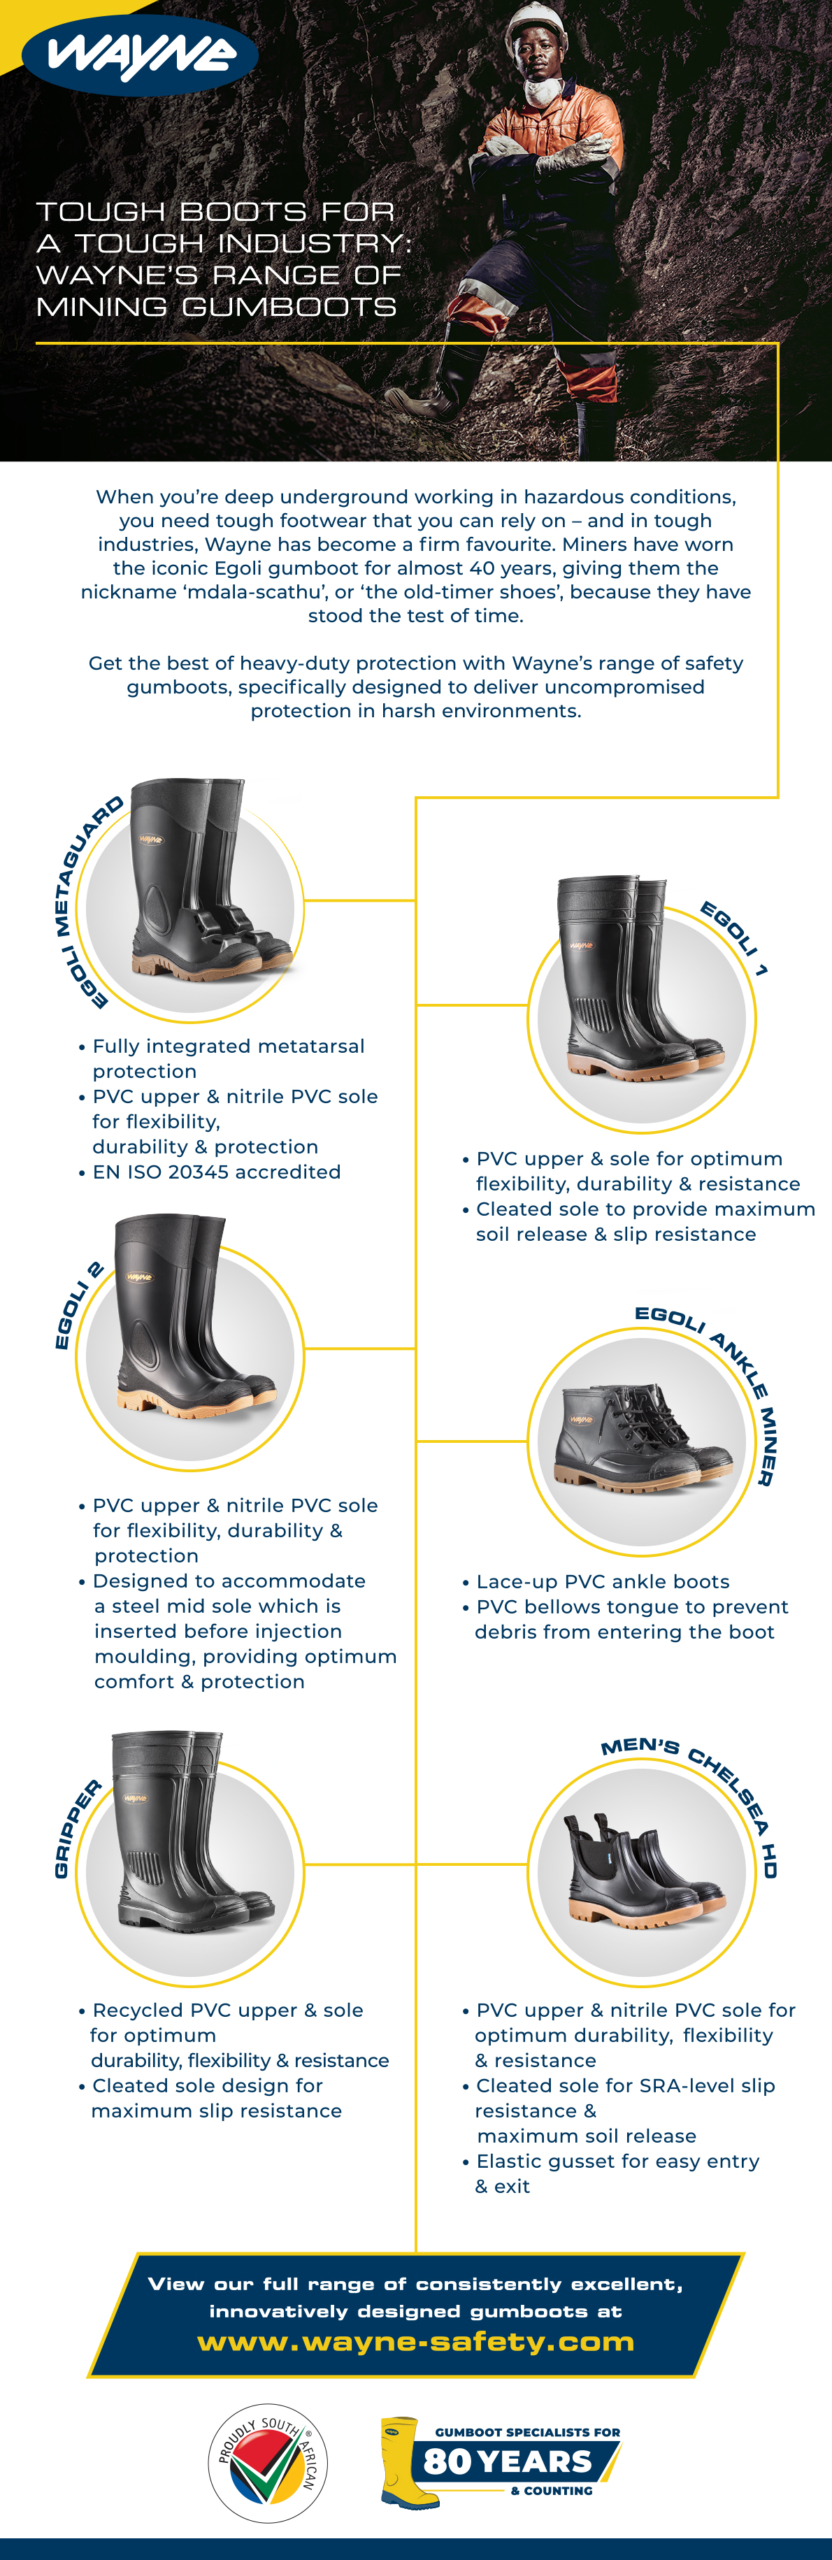 Tough Boots for a tough industry